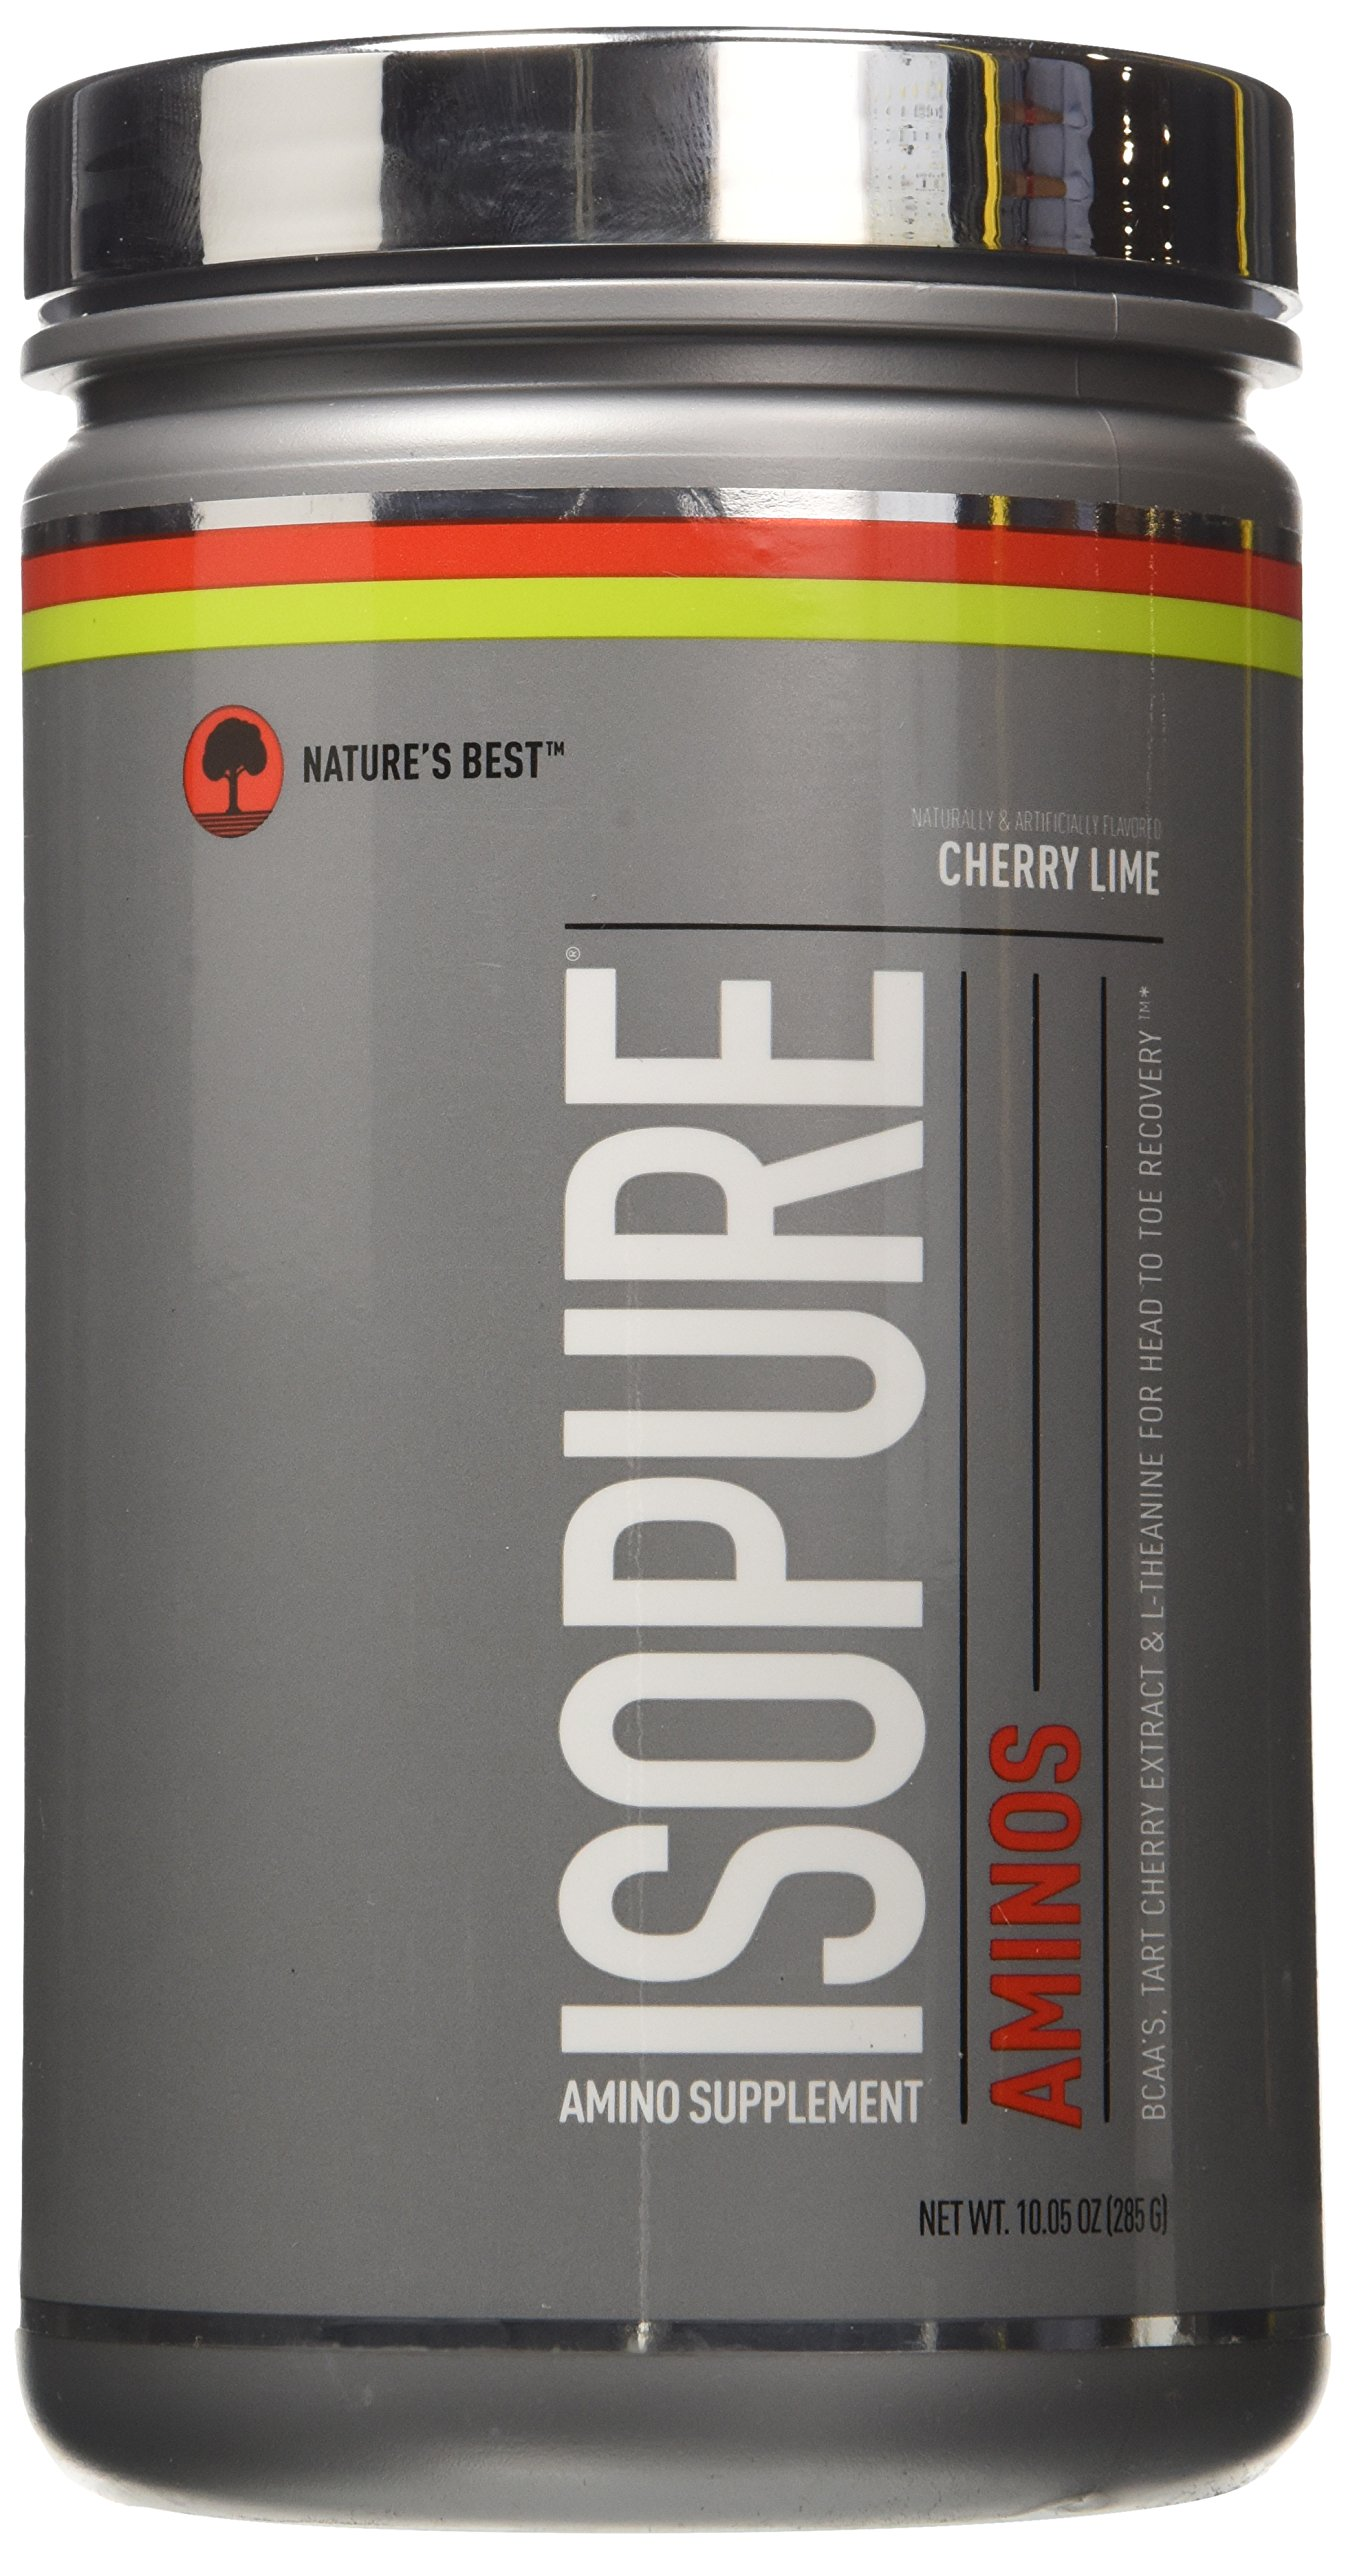 Isopure Amino Supplement, with BCAAs, Essential Amino Acids and L-Theanine, Flavor: Cherry Lime, 30 Servings by Isopure